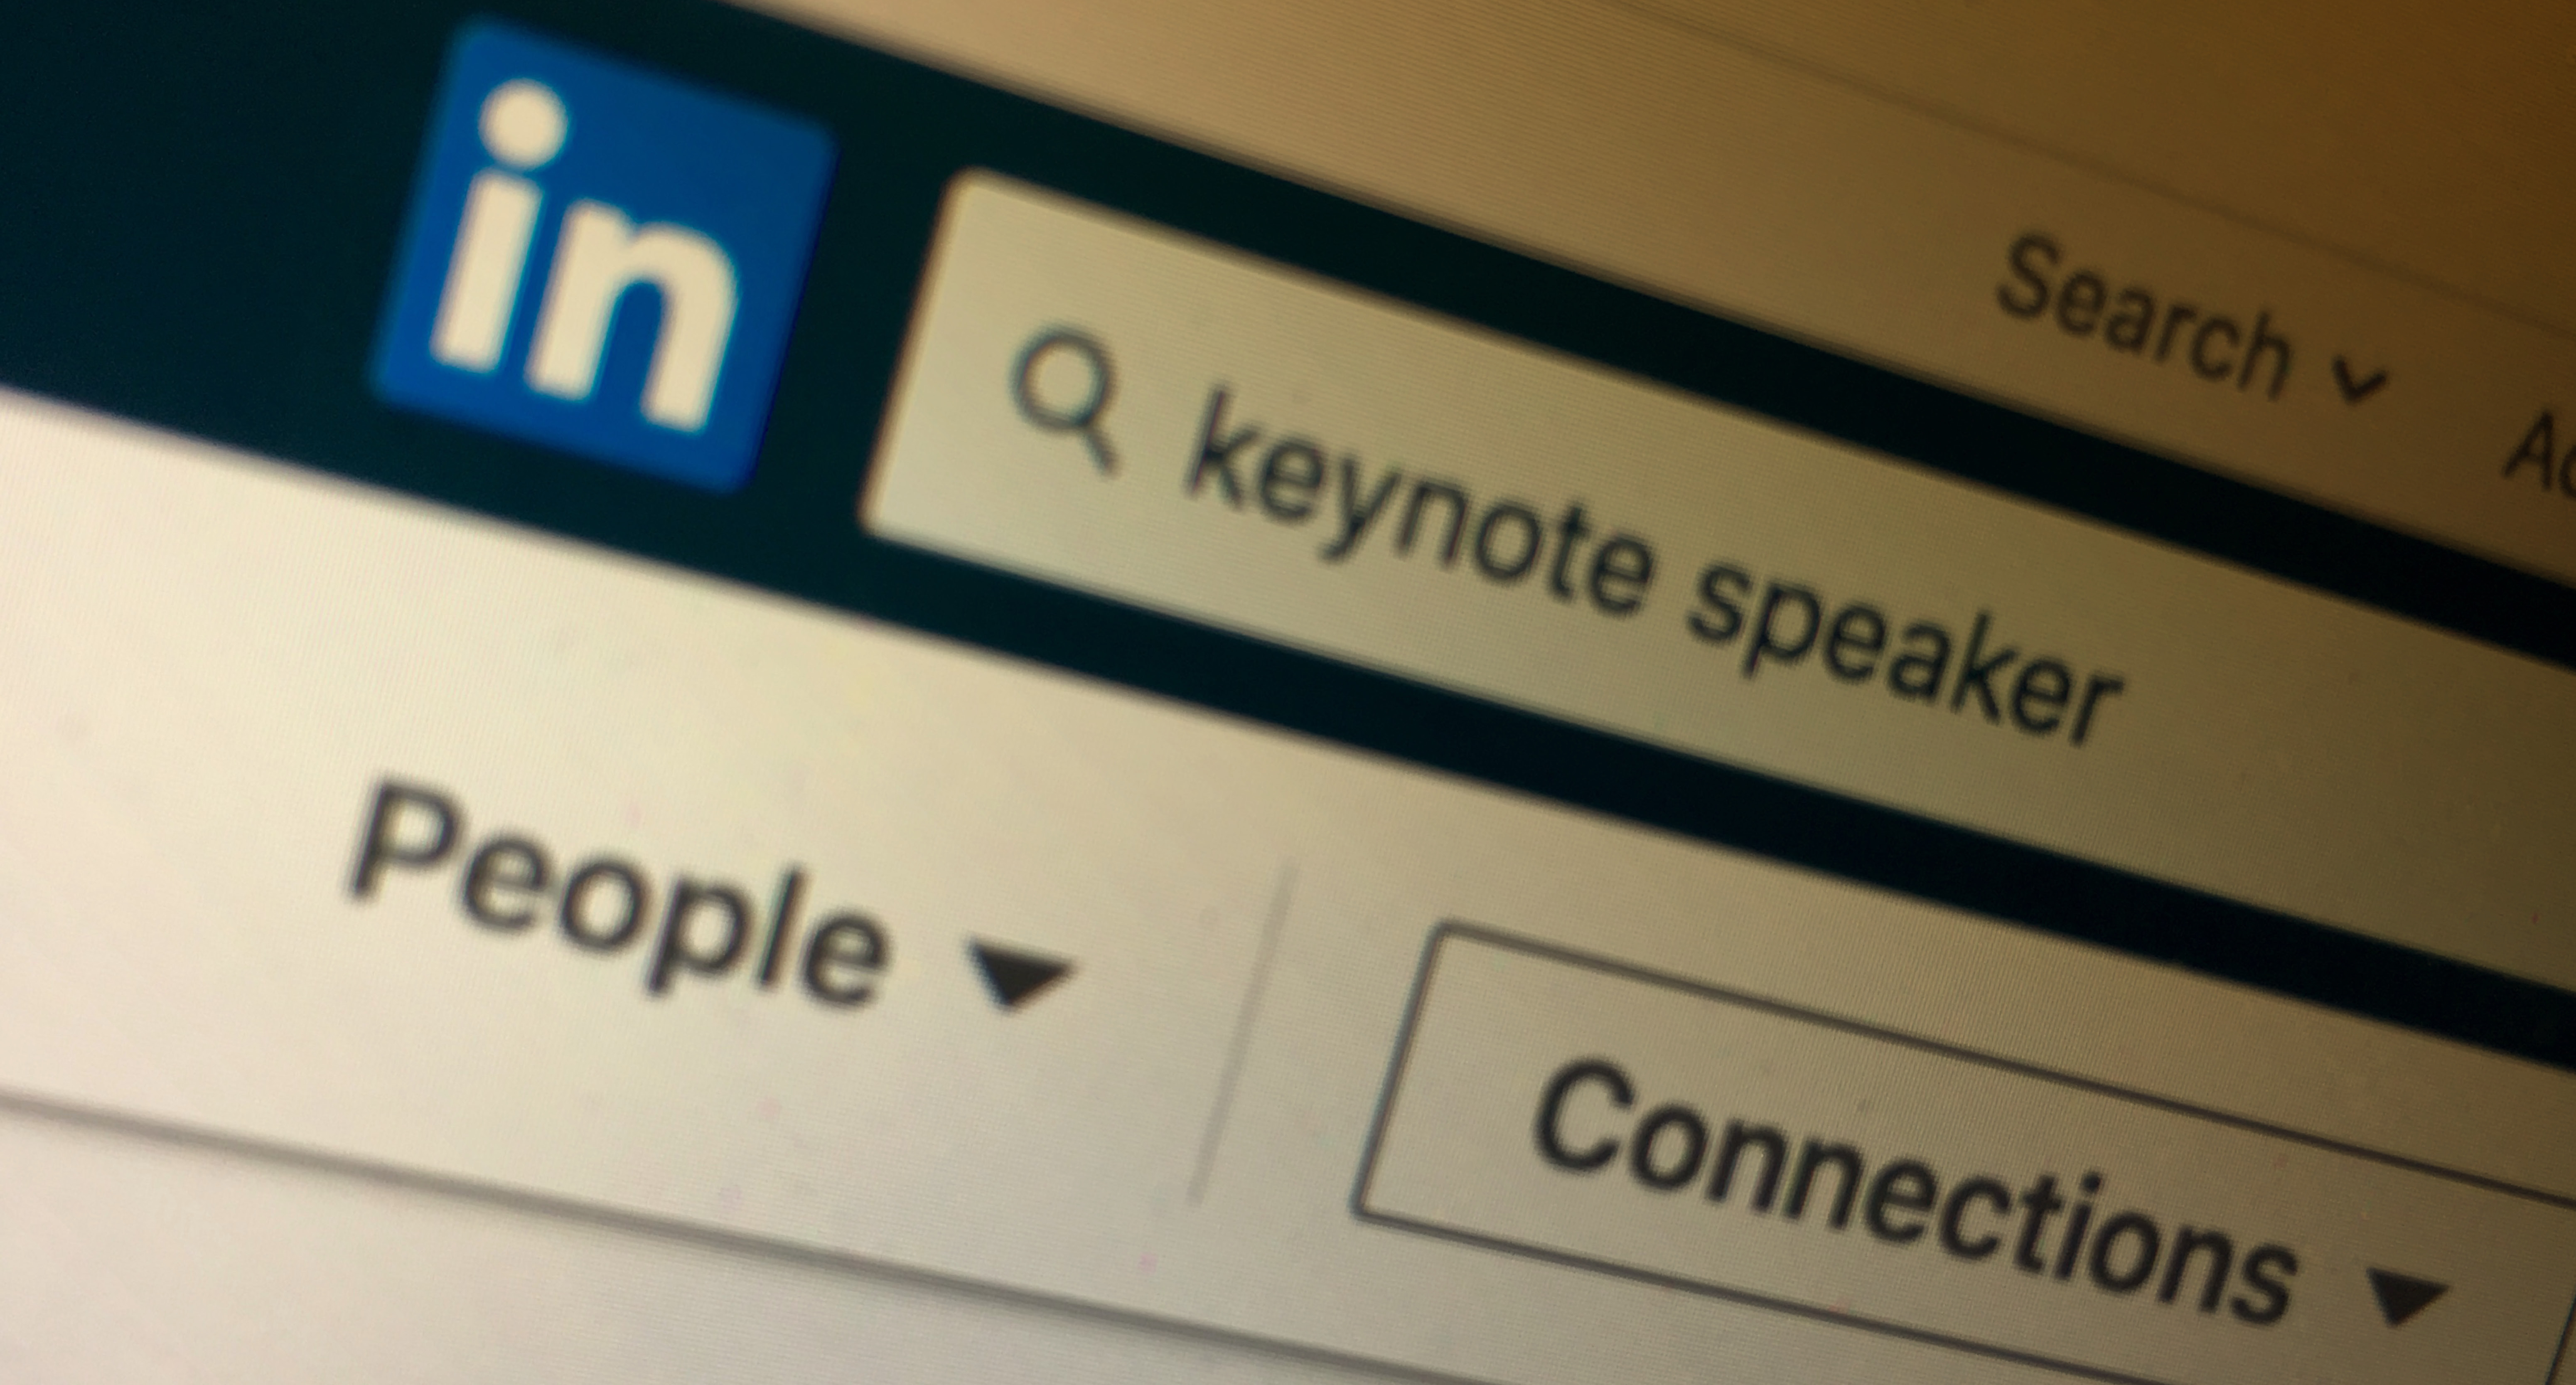 Keynote Speakers: Tips on browsing to find the Perfect Fit for Internal Events via Linkedin People Search.